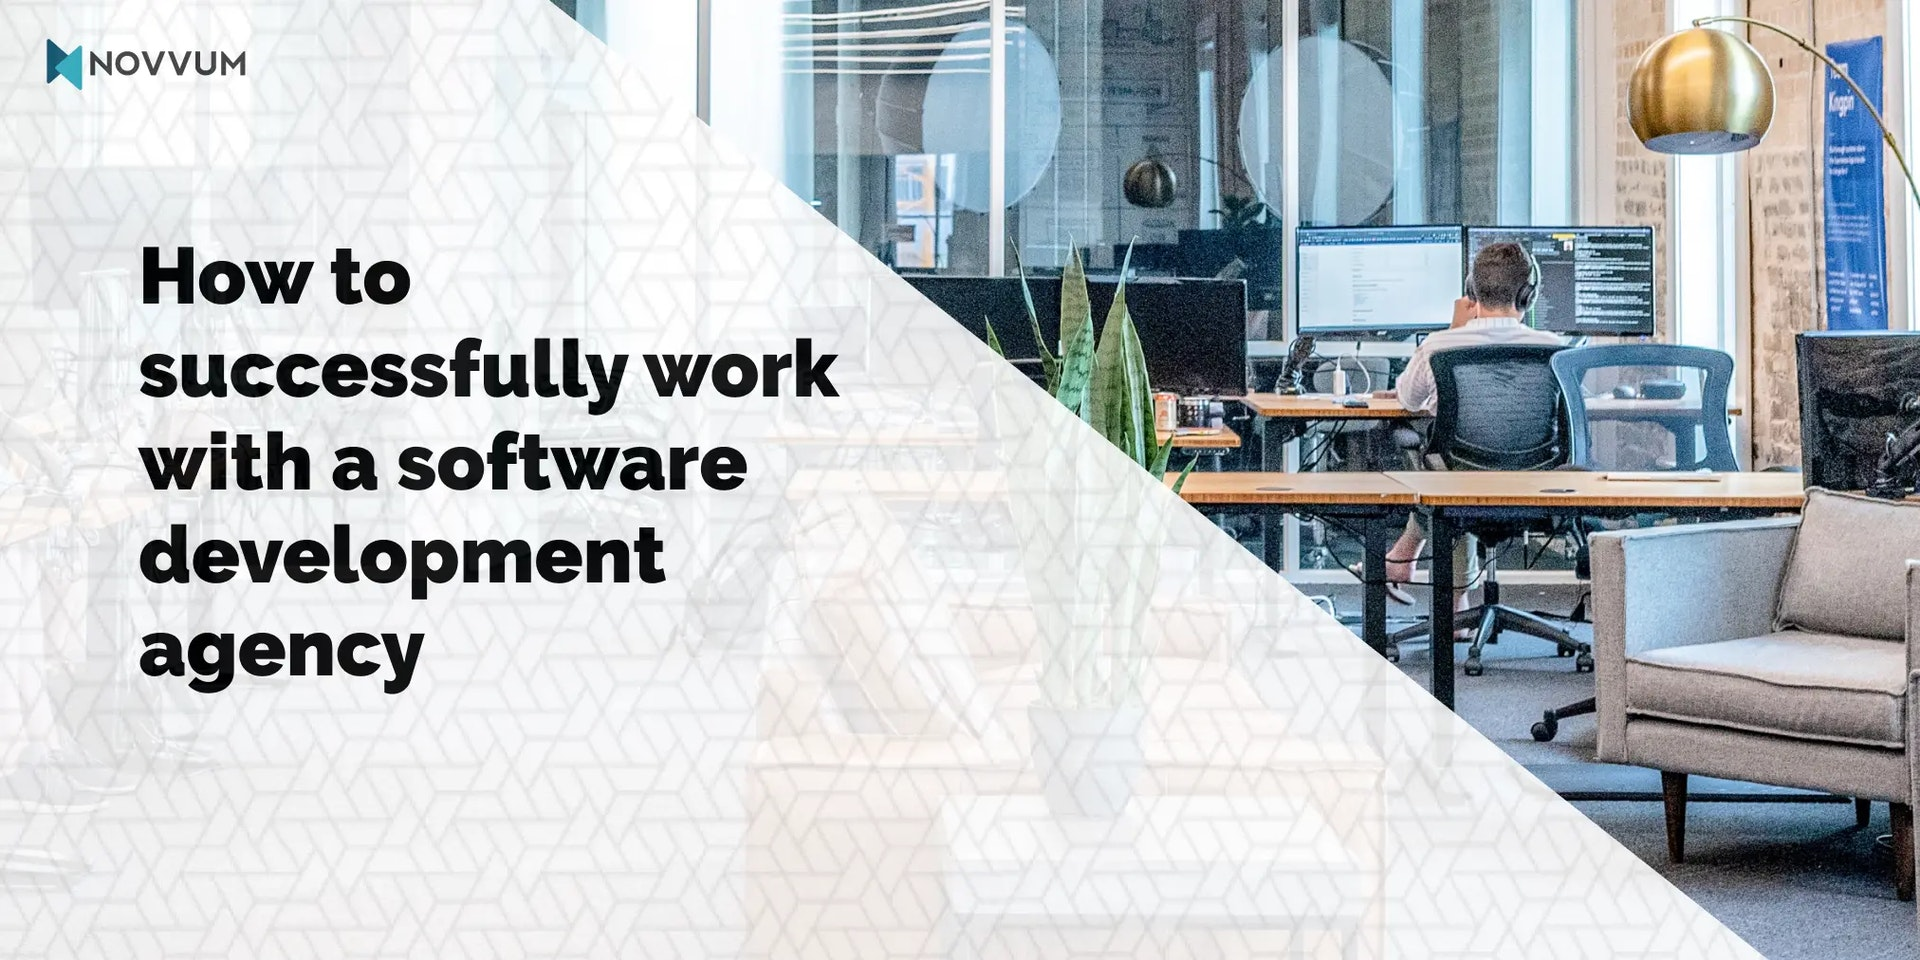 How to successfully work with a software development agency